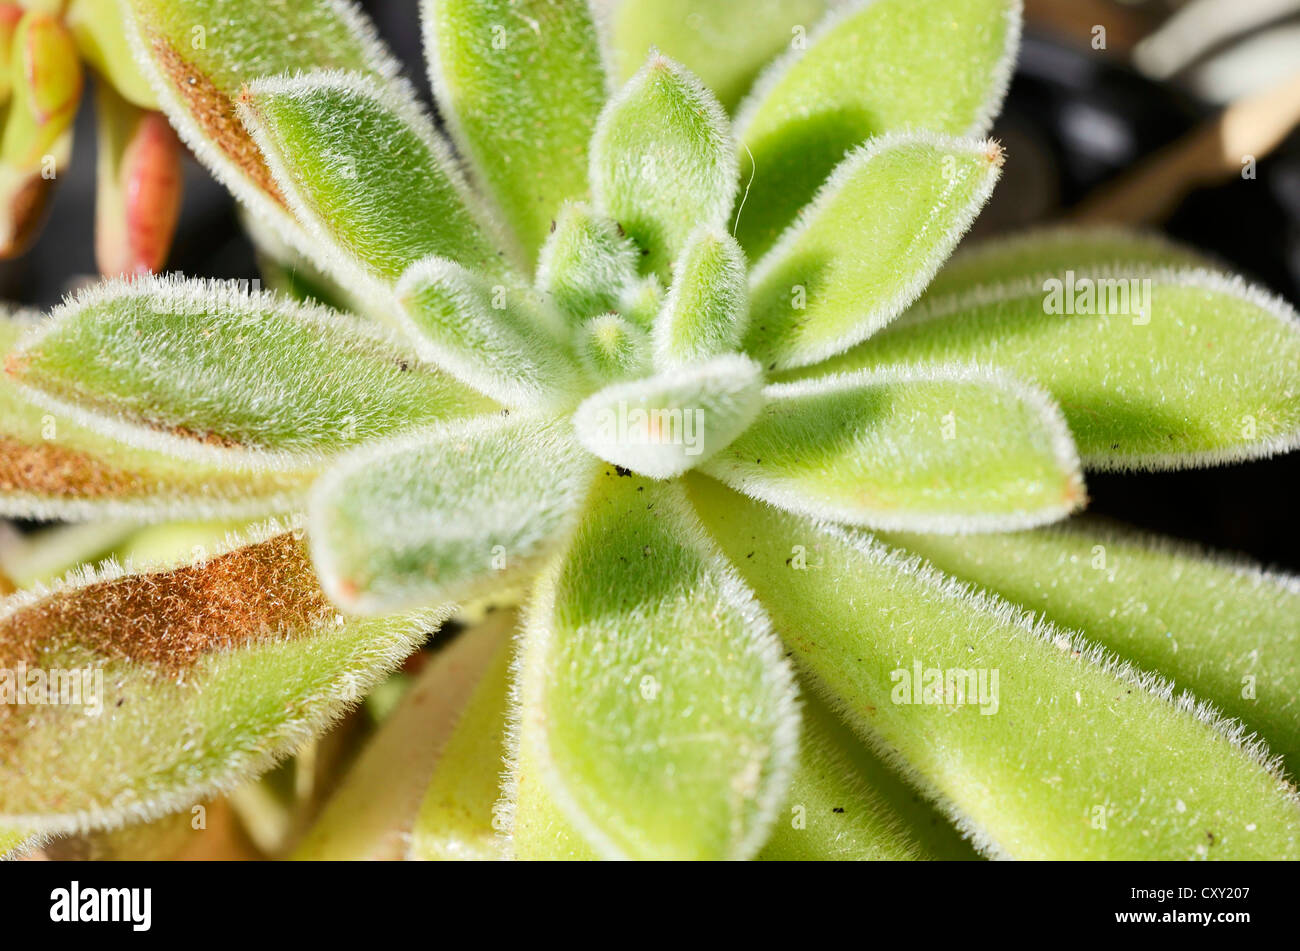 Firecracker Plant (Echeveria setosa), succulent plant with hairy leaves Stock Photo